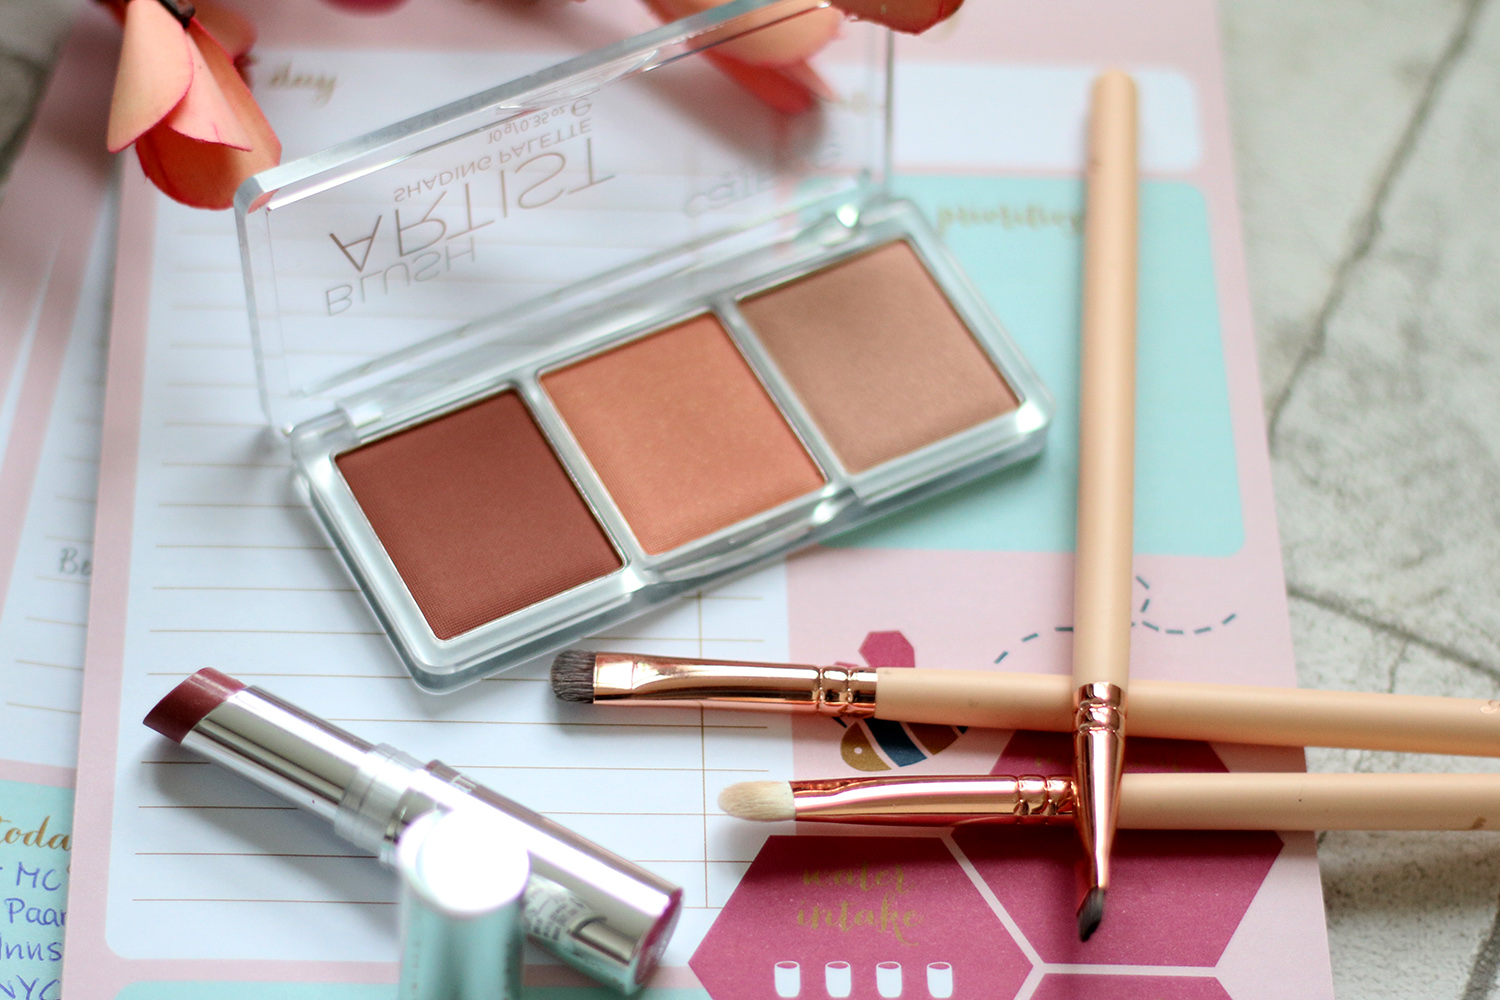 Blush, CATRICE Nude Sand Eyeshadow Palette, CATRICE Blus Artist Shading Palette 010 Bronzéclat, Review, Test, Swatch, Tagesmakeup, Alltagsmakeup, helle Haut, rote Haare, Makeup Tutorial, Monday's Makeup, Beautytipps, Beauty Blog, Berlin, Influencer, Advance Your Style, advanceyourstyle